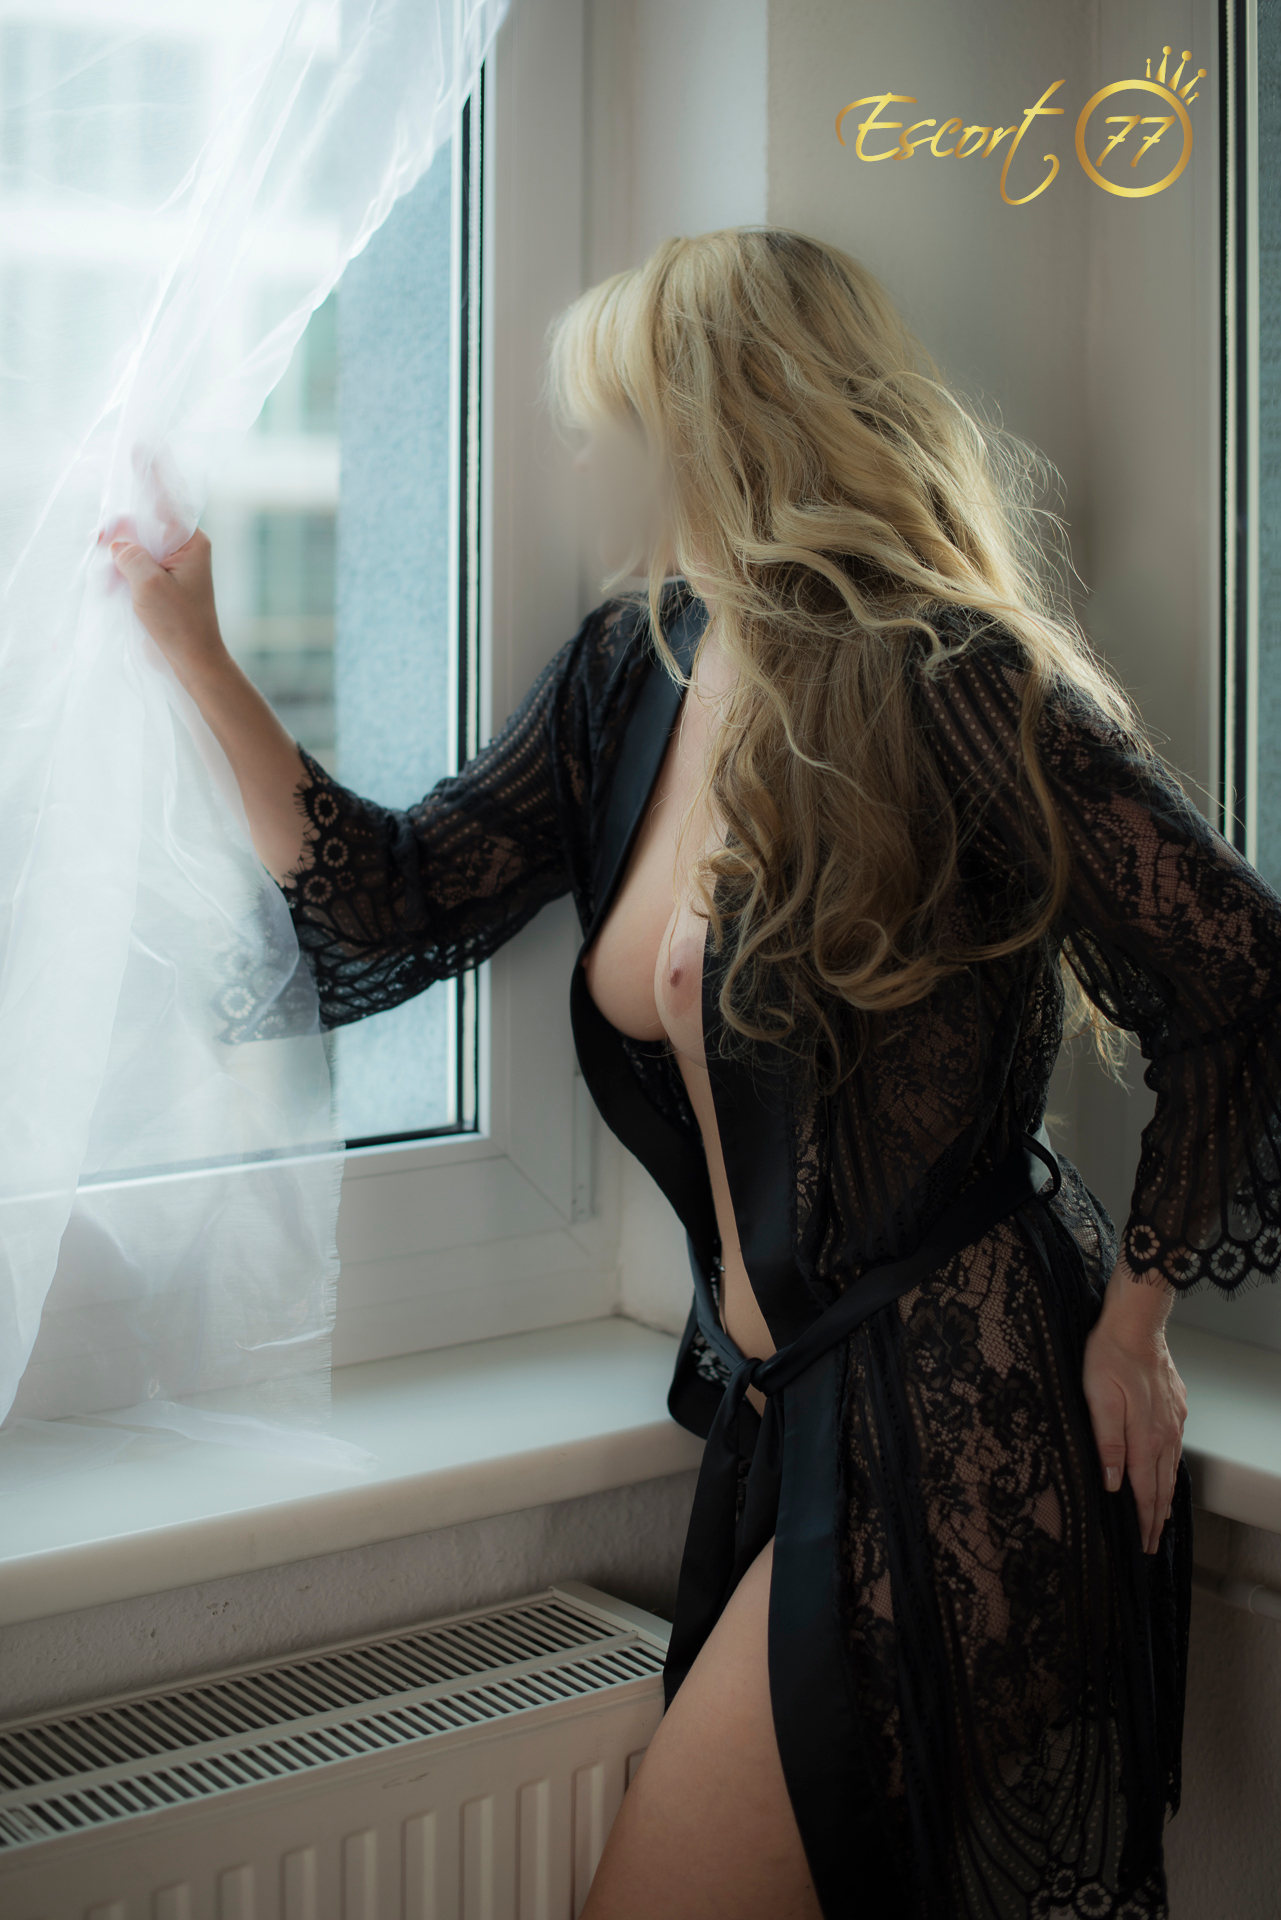 Escort Berlin Privatmodell Nola